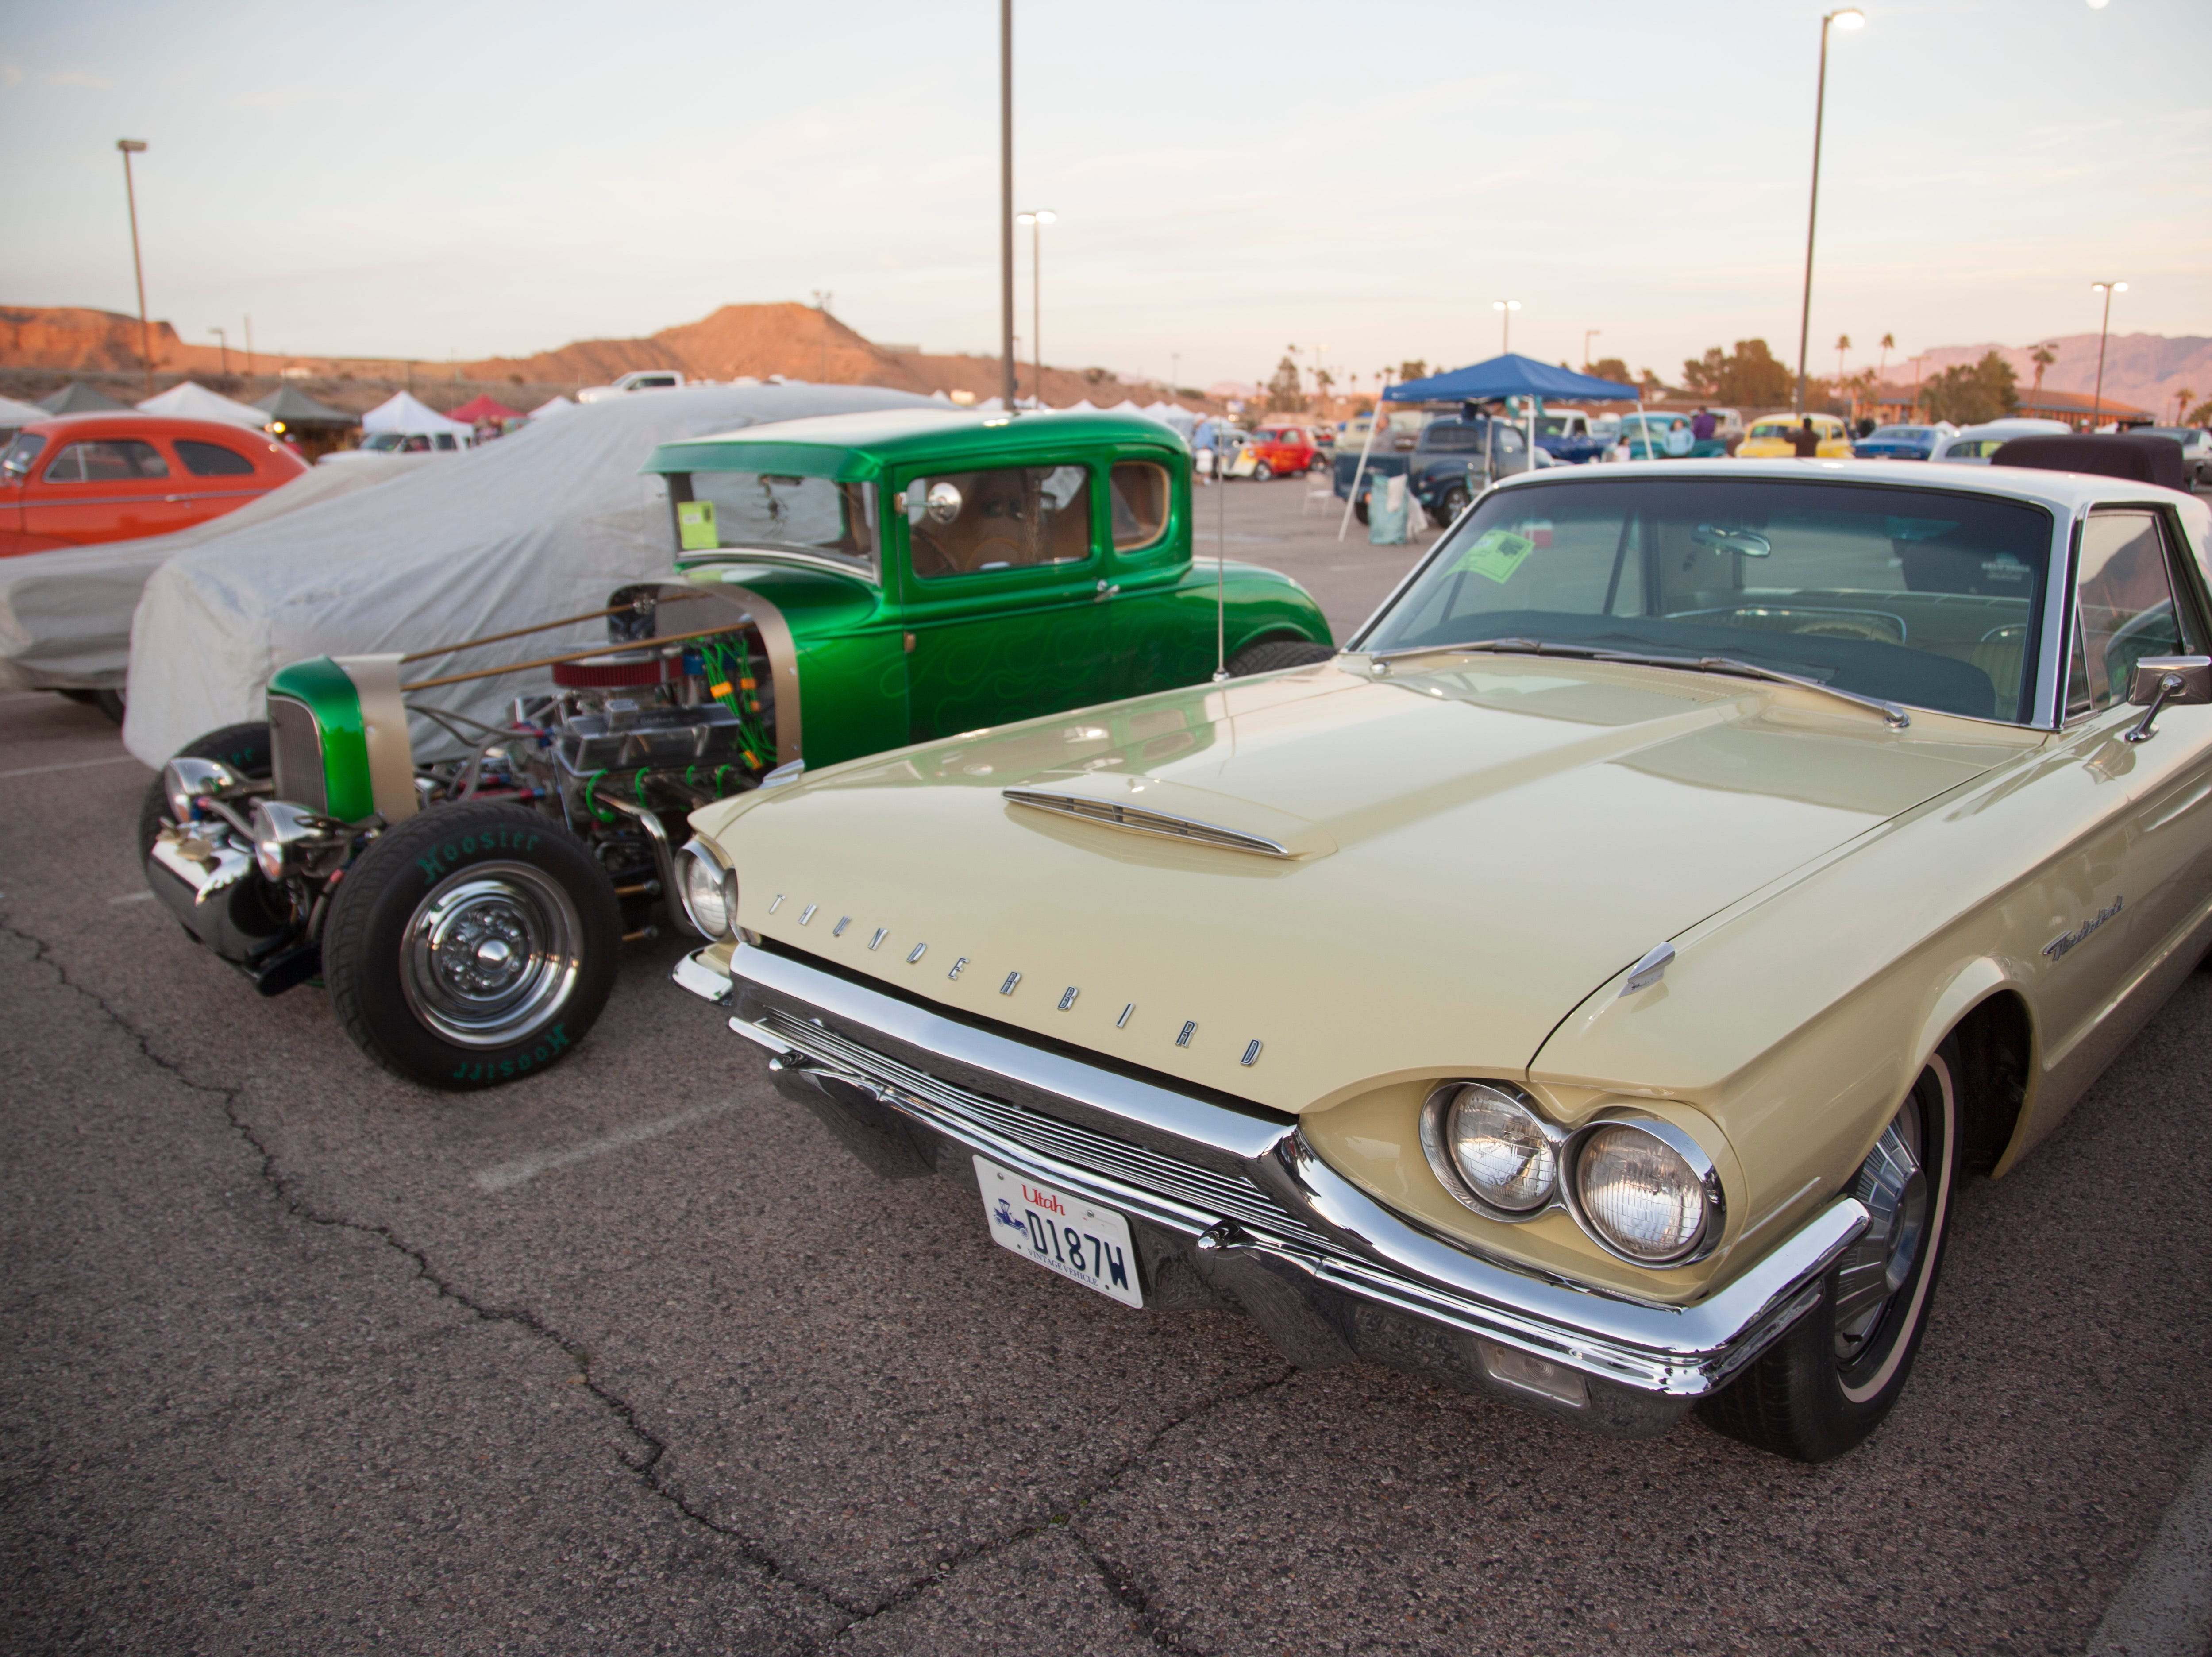 Car enthusiasts gather at the Casablanca for Mesquite Motor Mania Saturday, Jan. 19, 2019.